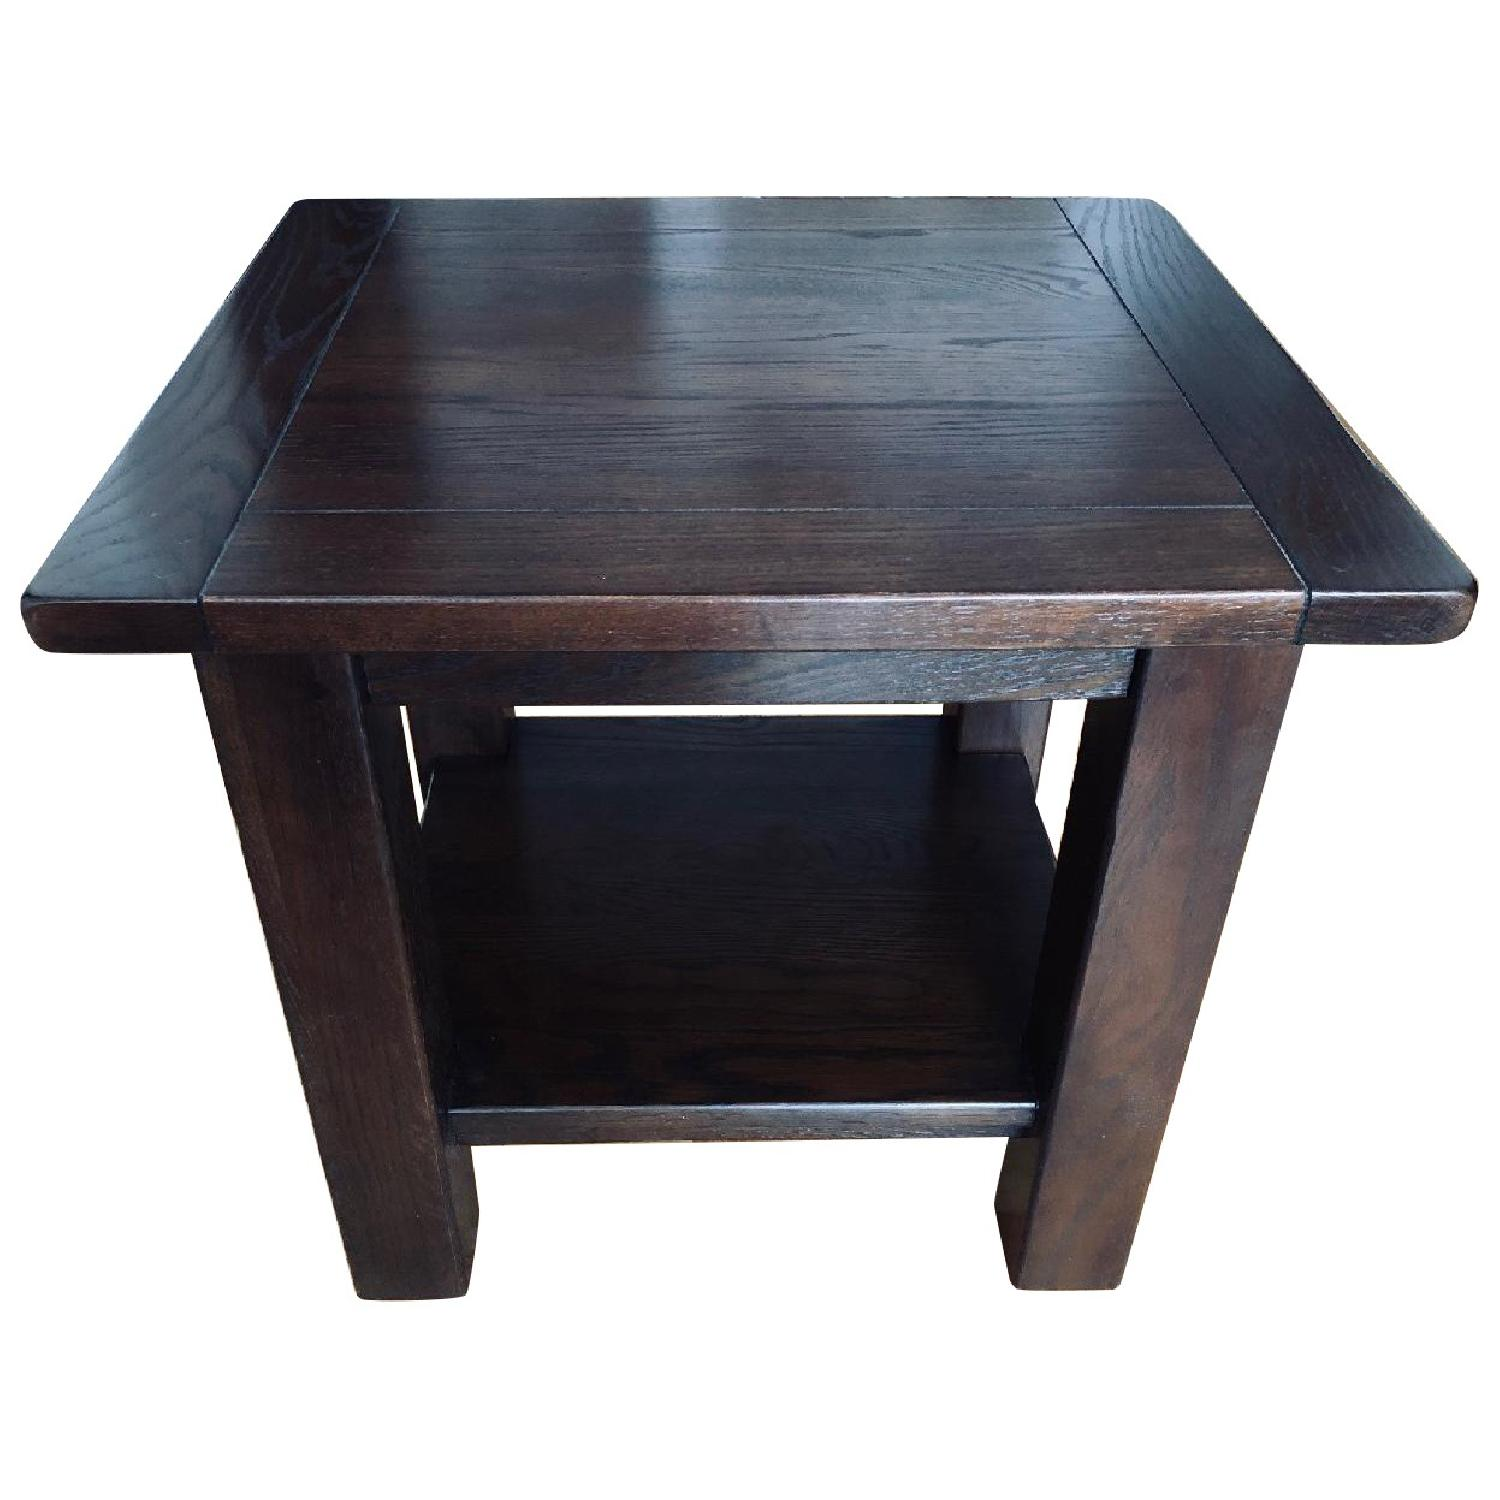 Pottery Barn Benchwright Cube Side Tables - image-0